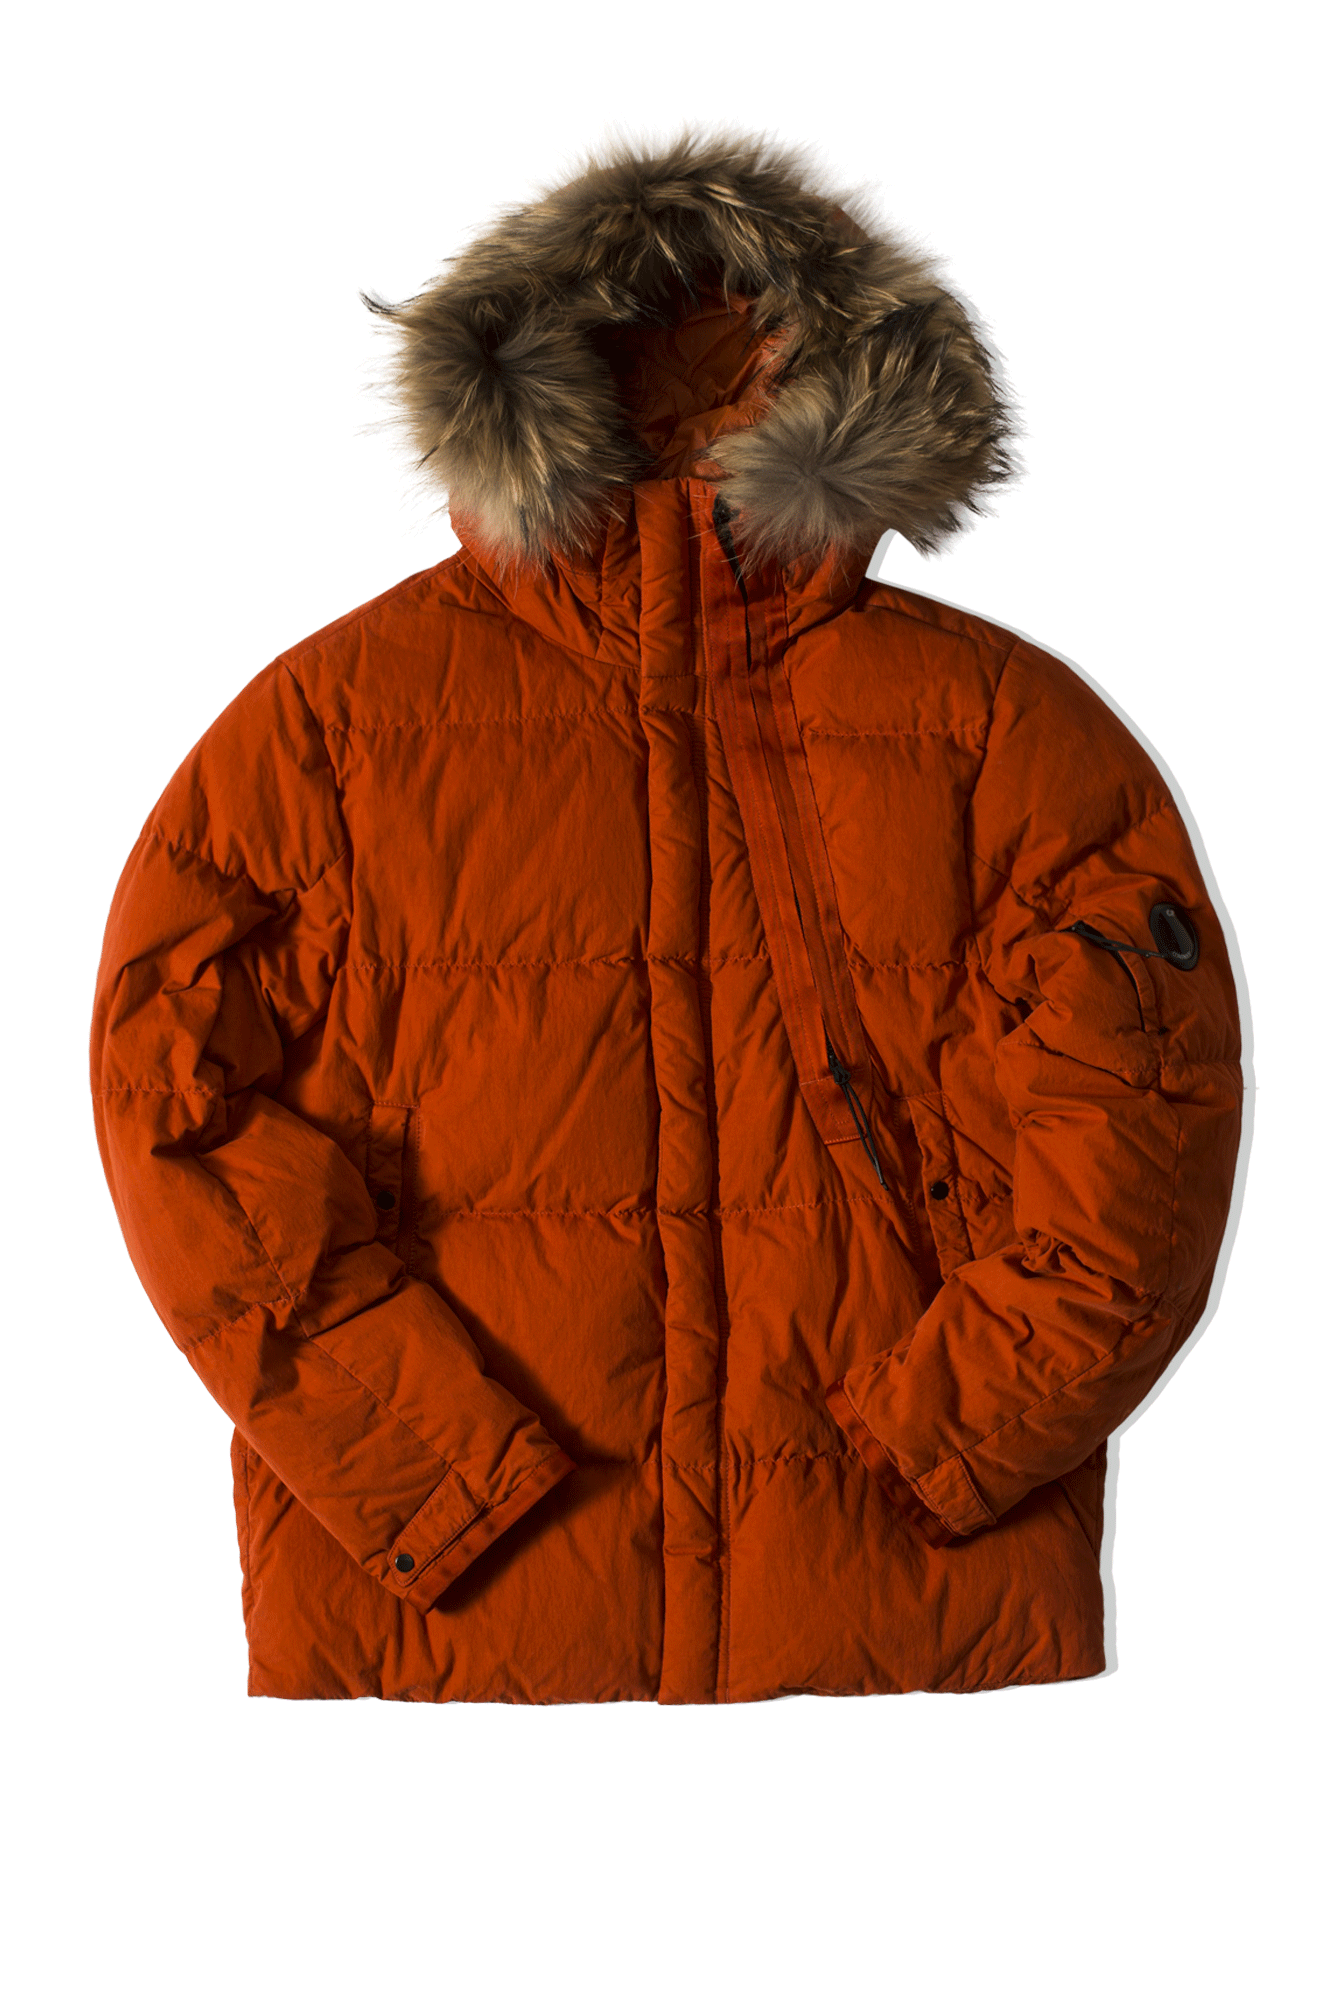 MEDIUM JACKET Orange